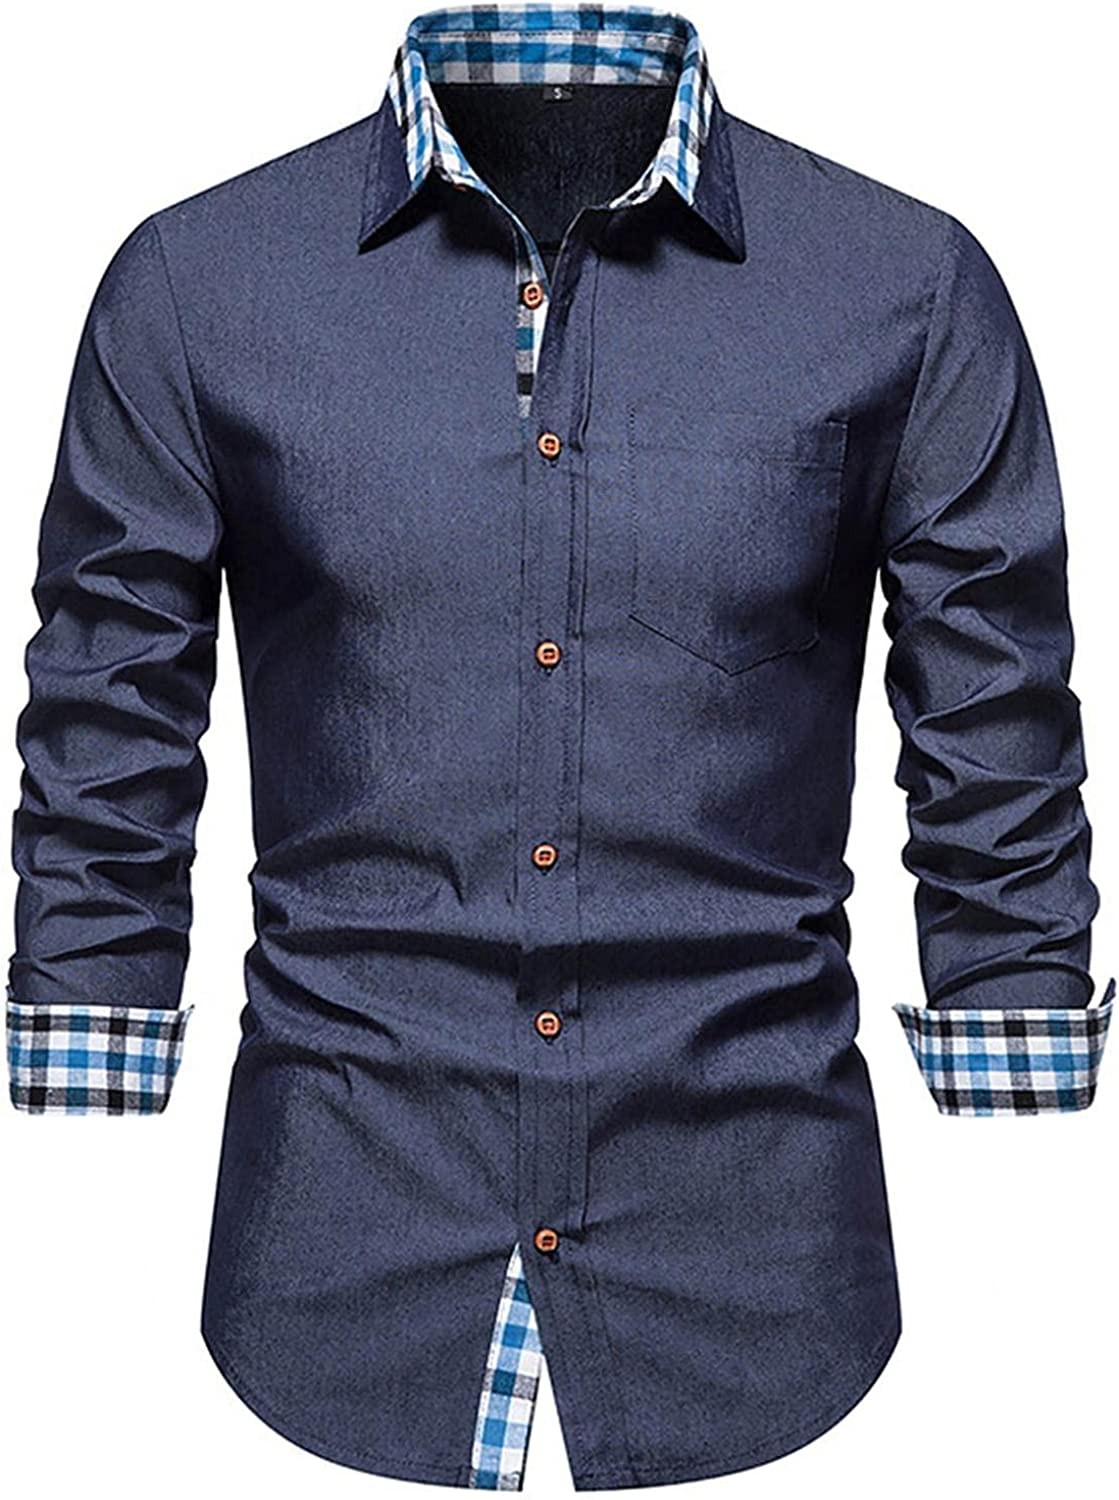 Huangse Men's Slim Fit Business Shirt Casual Long Sleeves Inner Stitching Plaid Button Down Dress Shirts